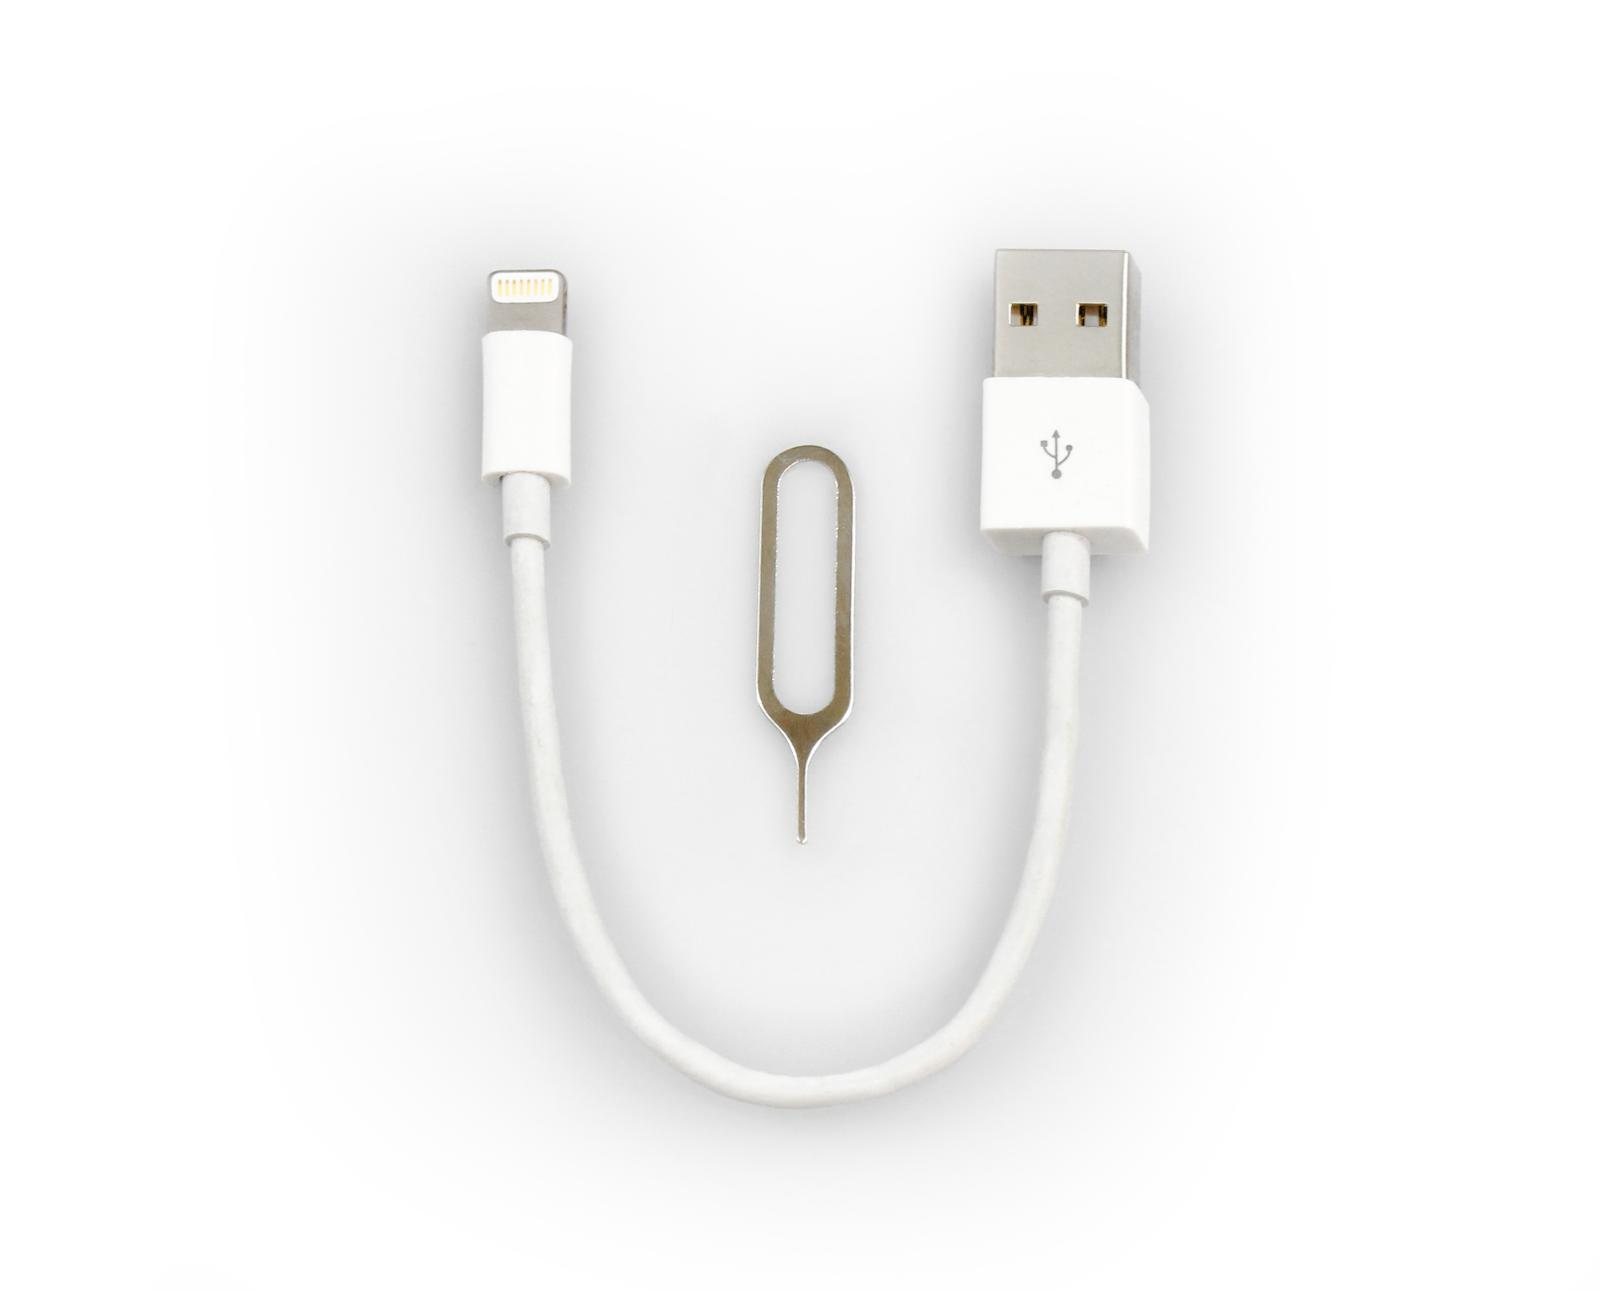 6 inch mfi lightning cable charger w